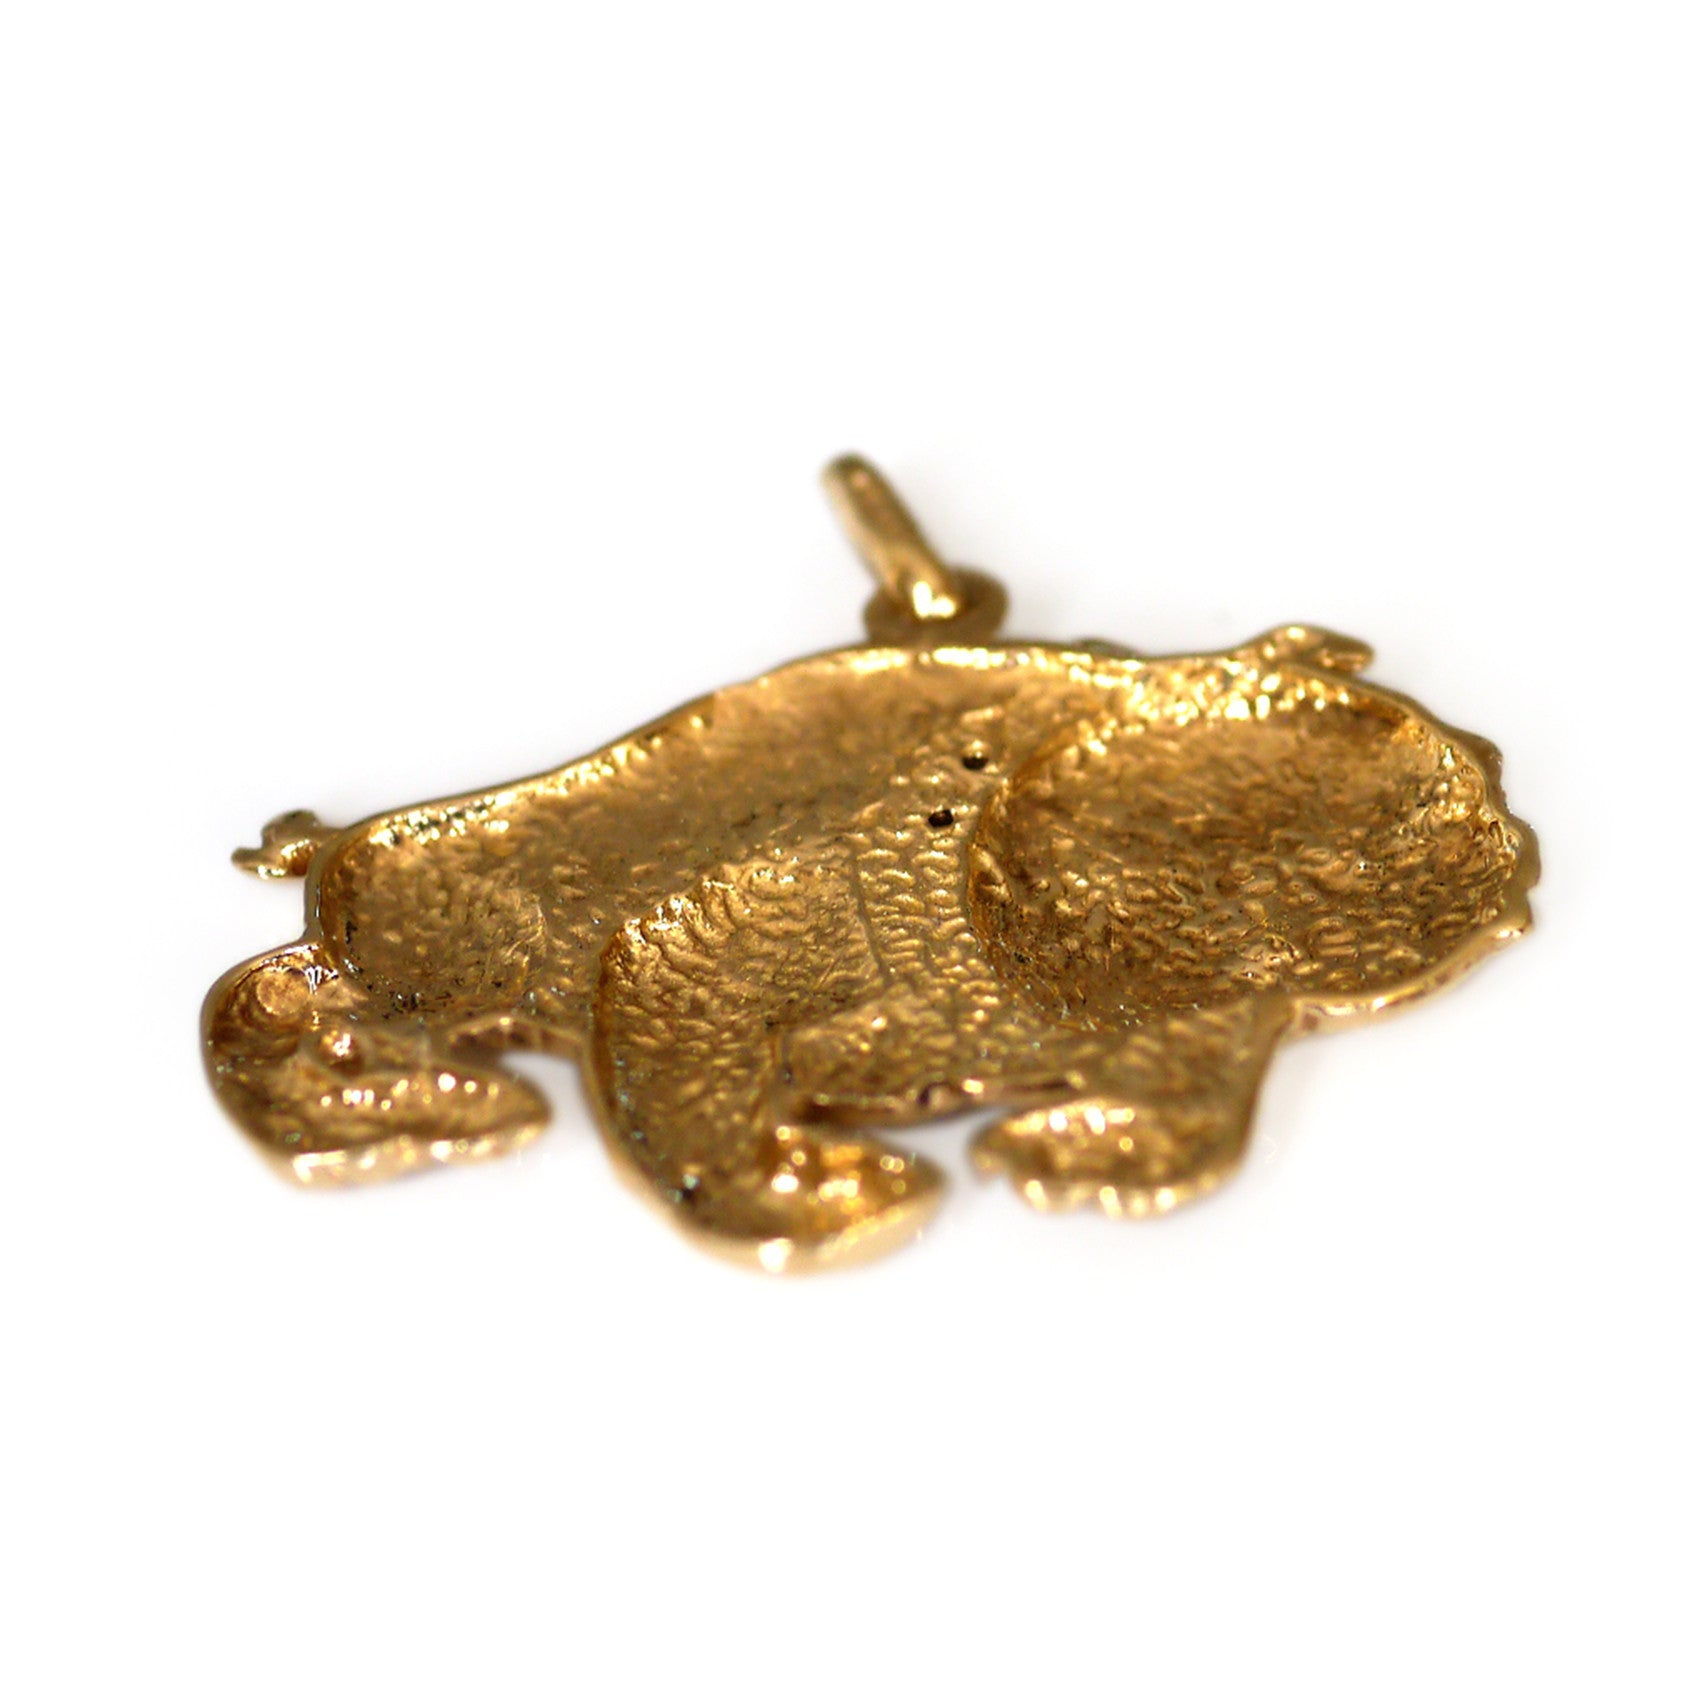 Gold Glorious Gold: Bulldog Pendant